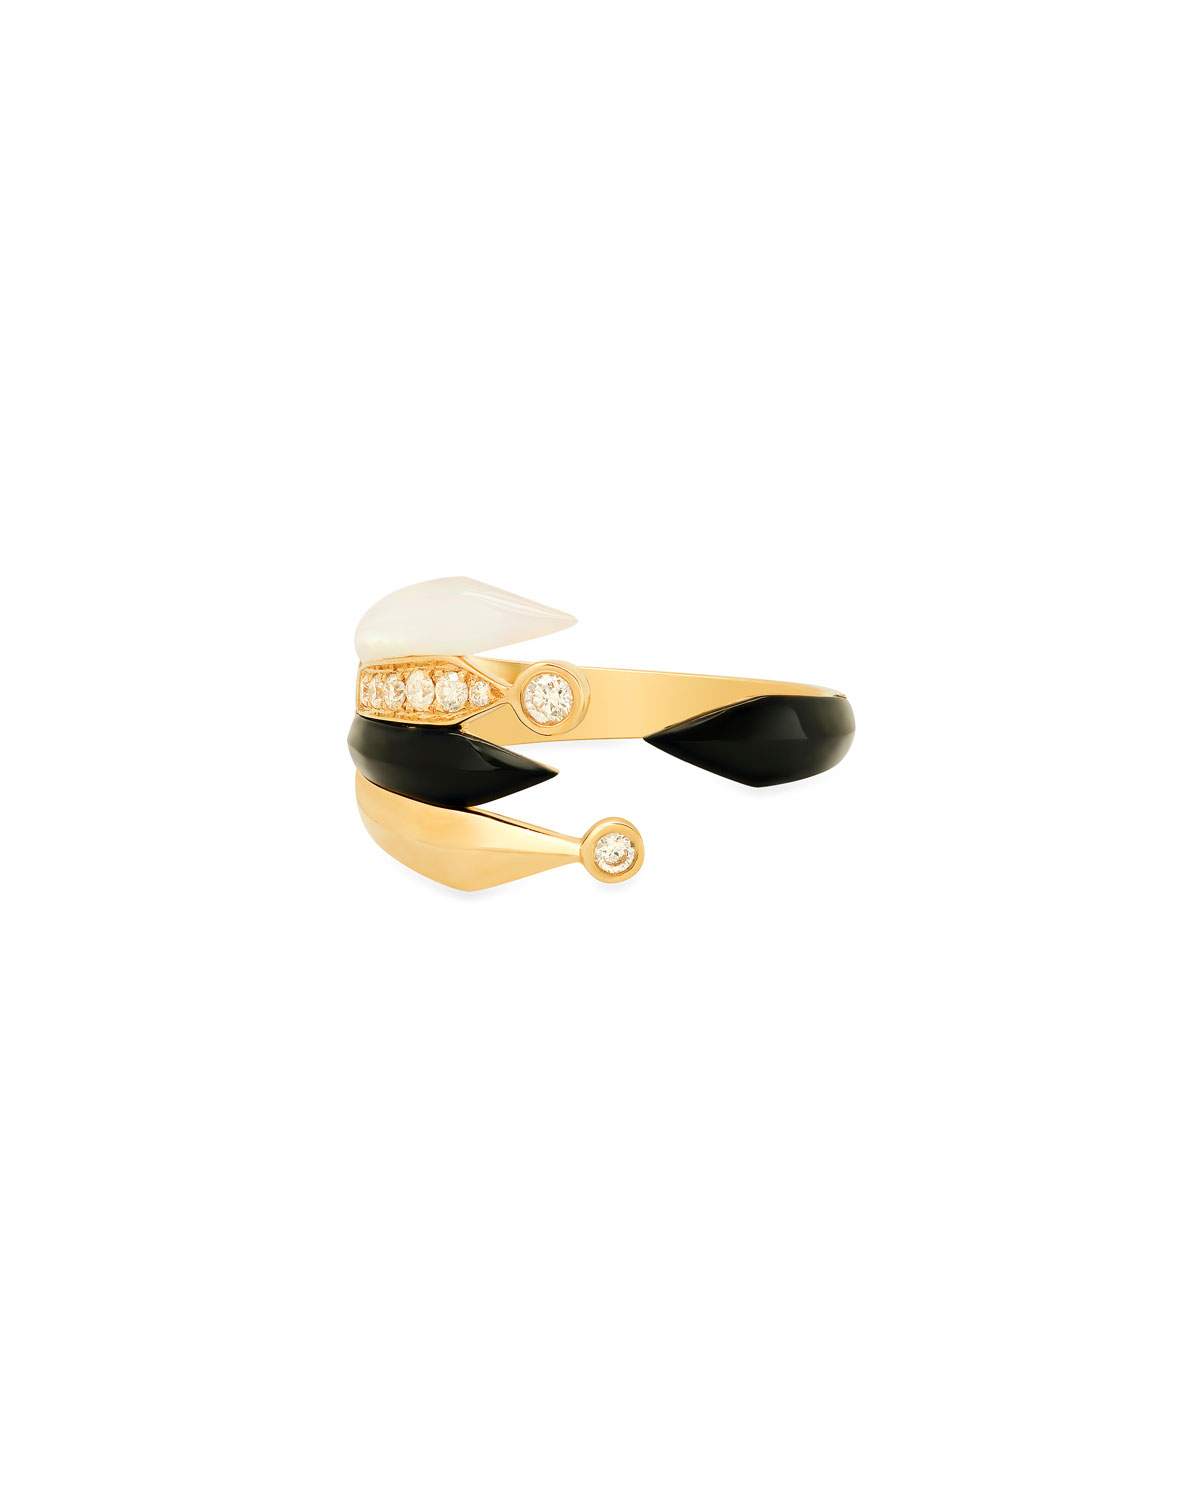 18K Penacho Ring in Onyx and Mother-of-Pearl